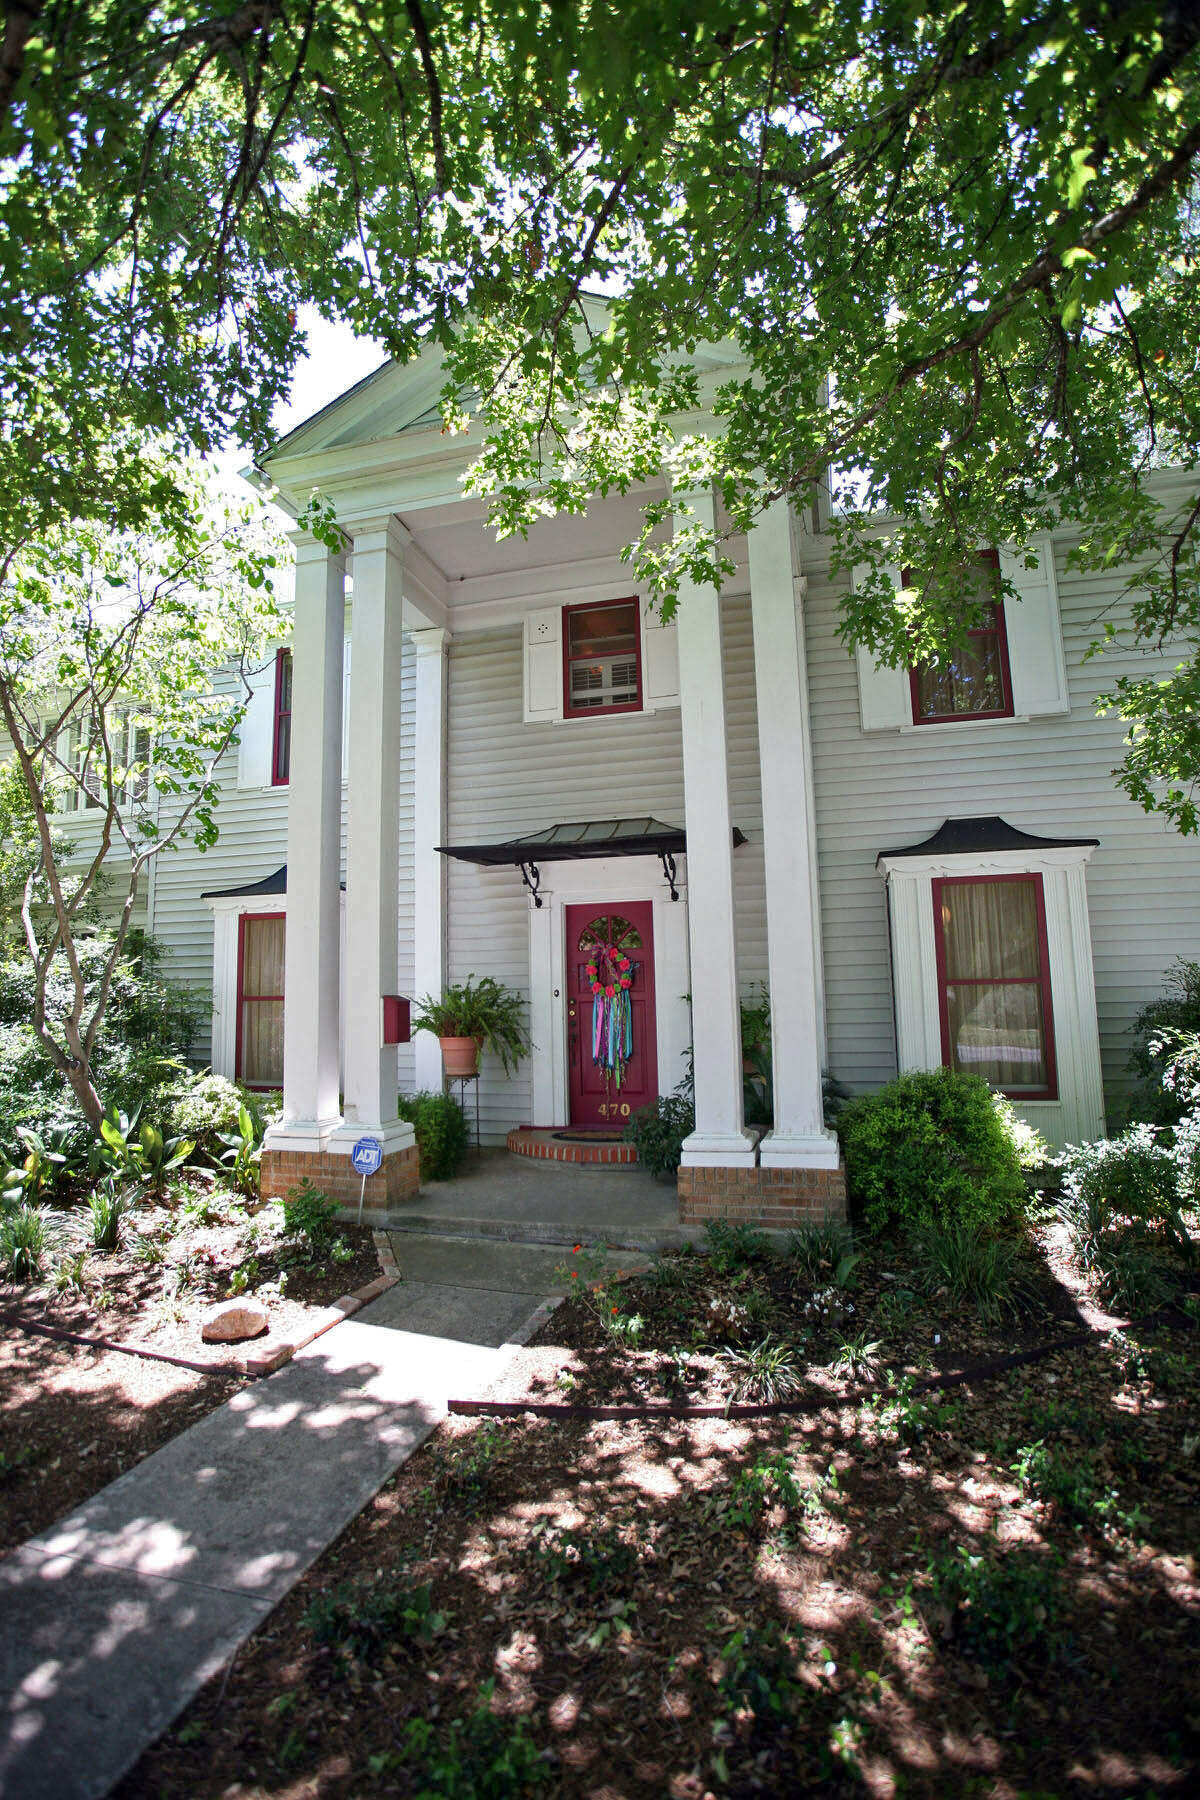 Peranteau bought her current home from her brother when he and his wife were downsizing 20 years ago. The Greek Revival house in Monticello Park was built in 1934.